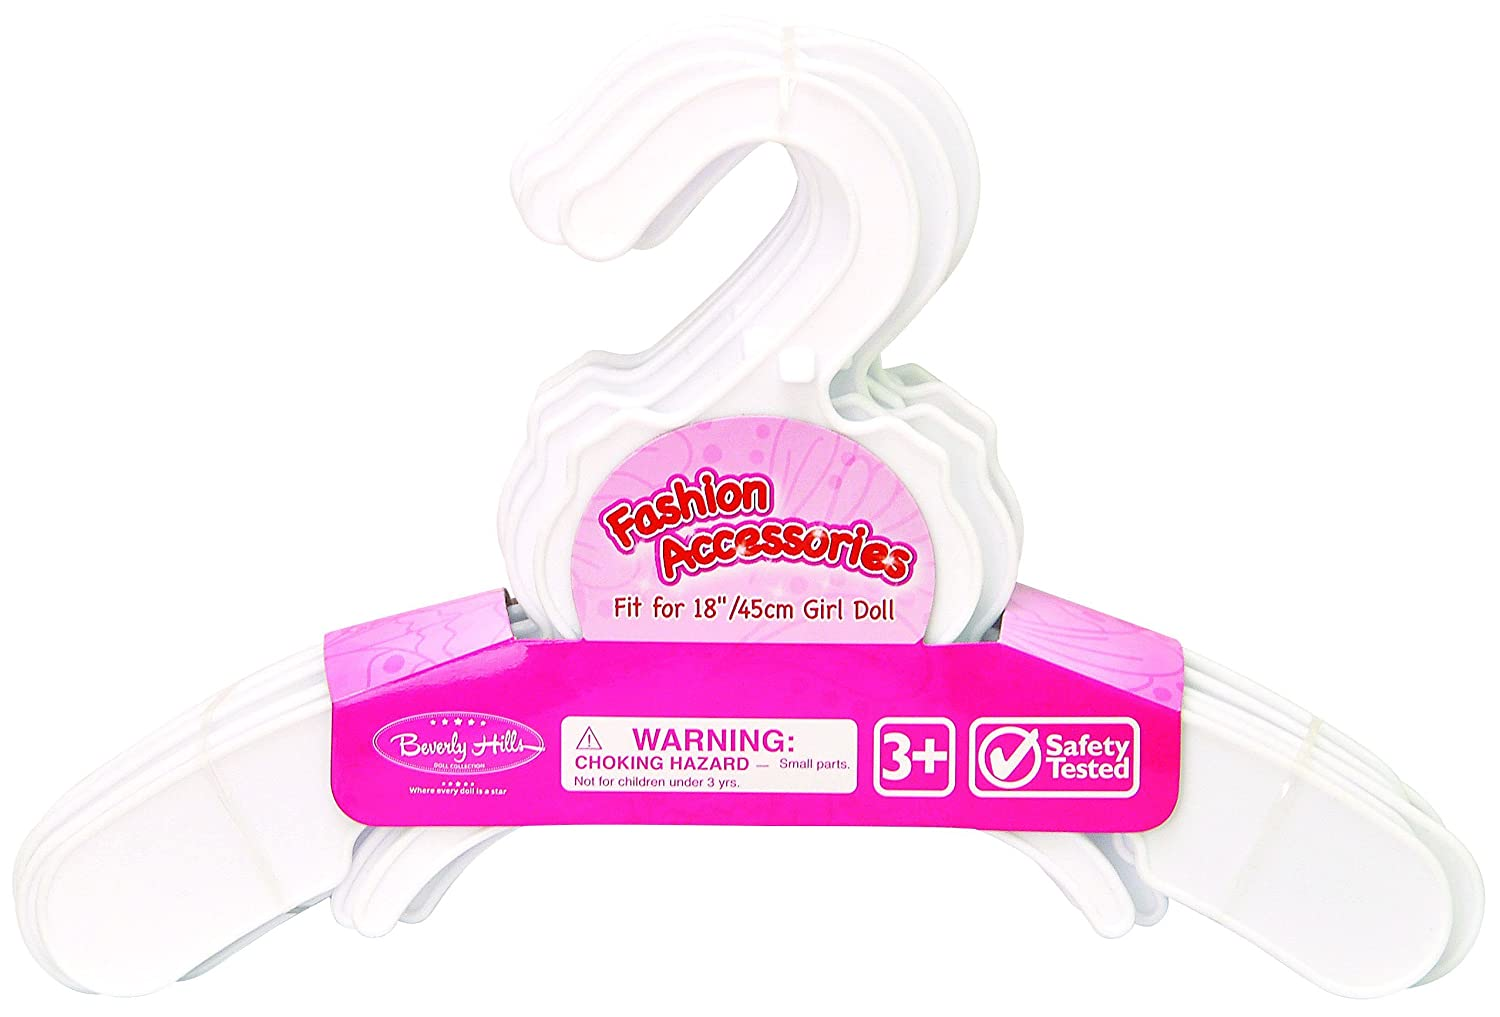 12 Pink Plastic Doll Hangers Fits 18 Inch American Girl Doll Clothes